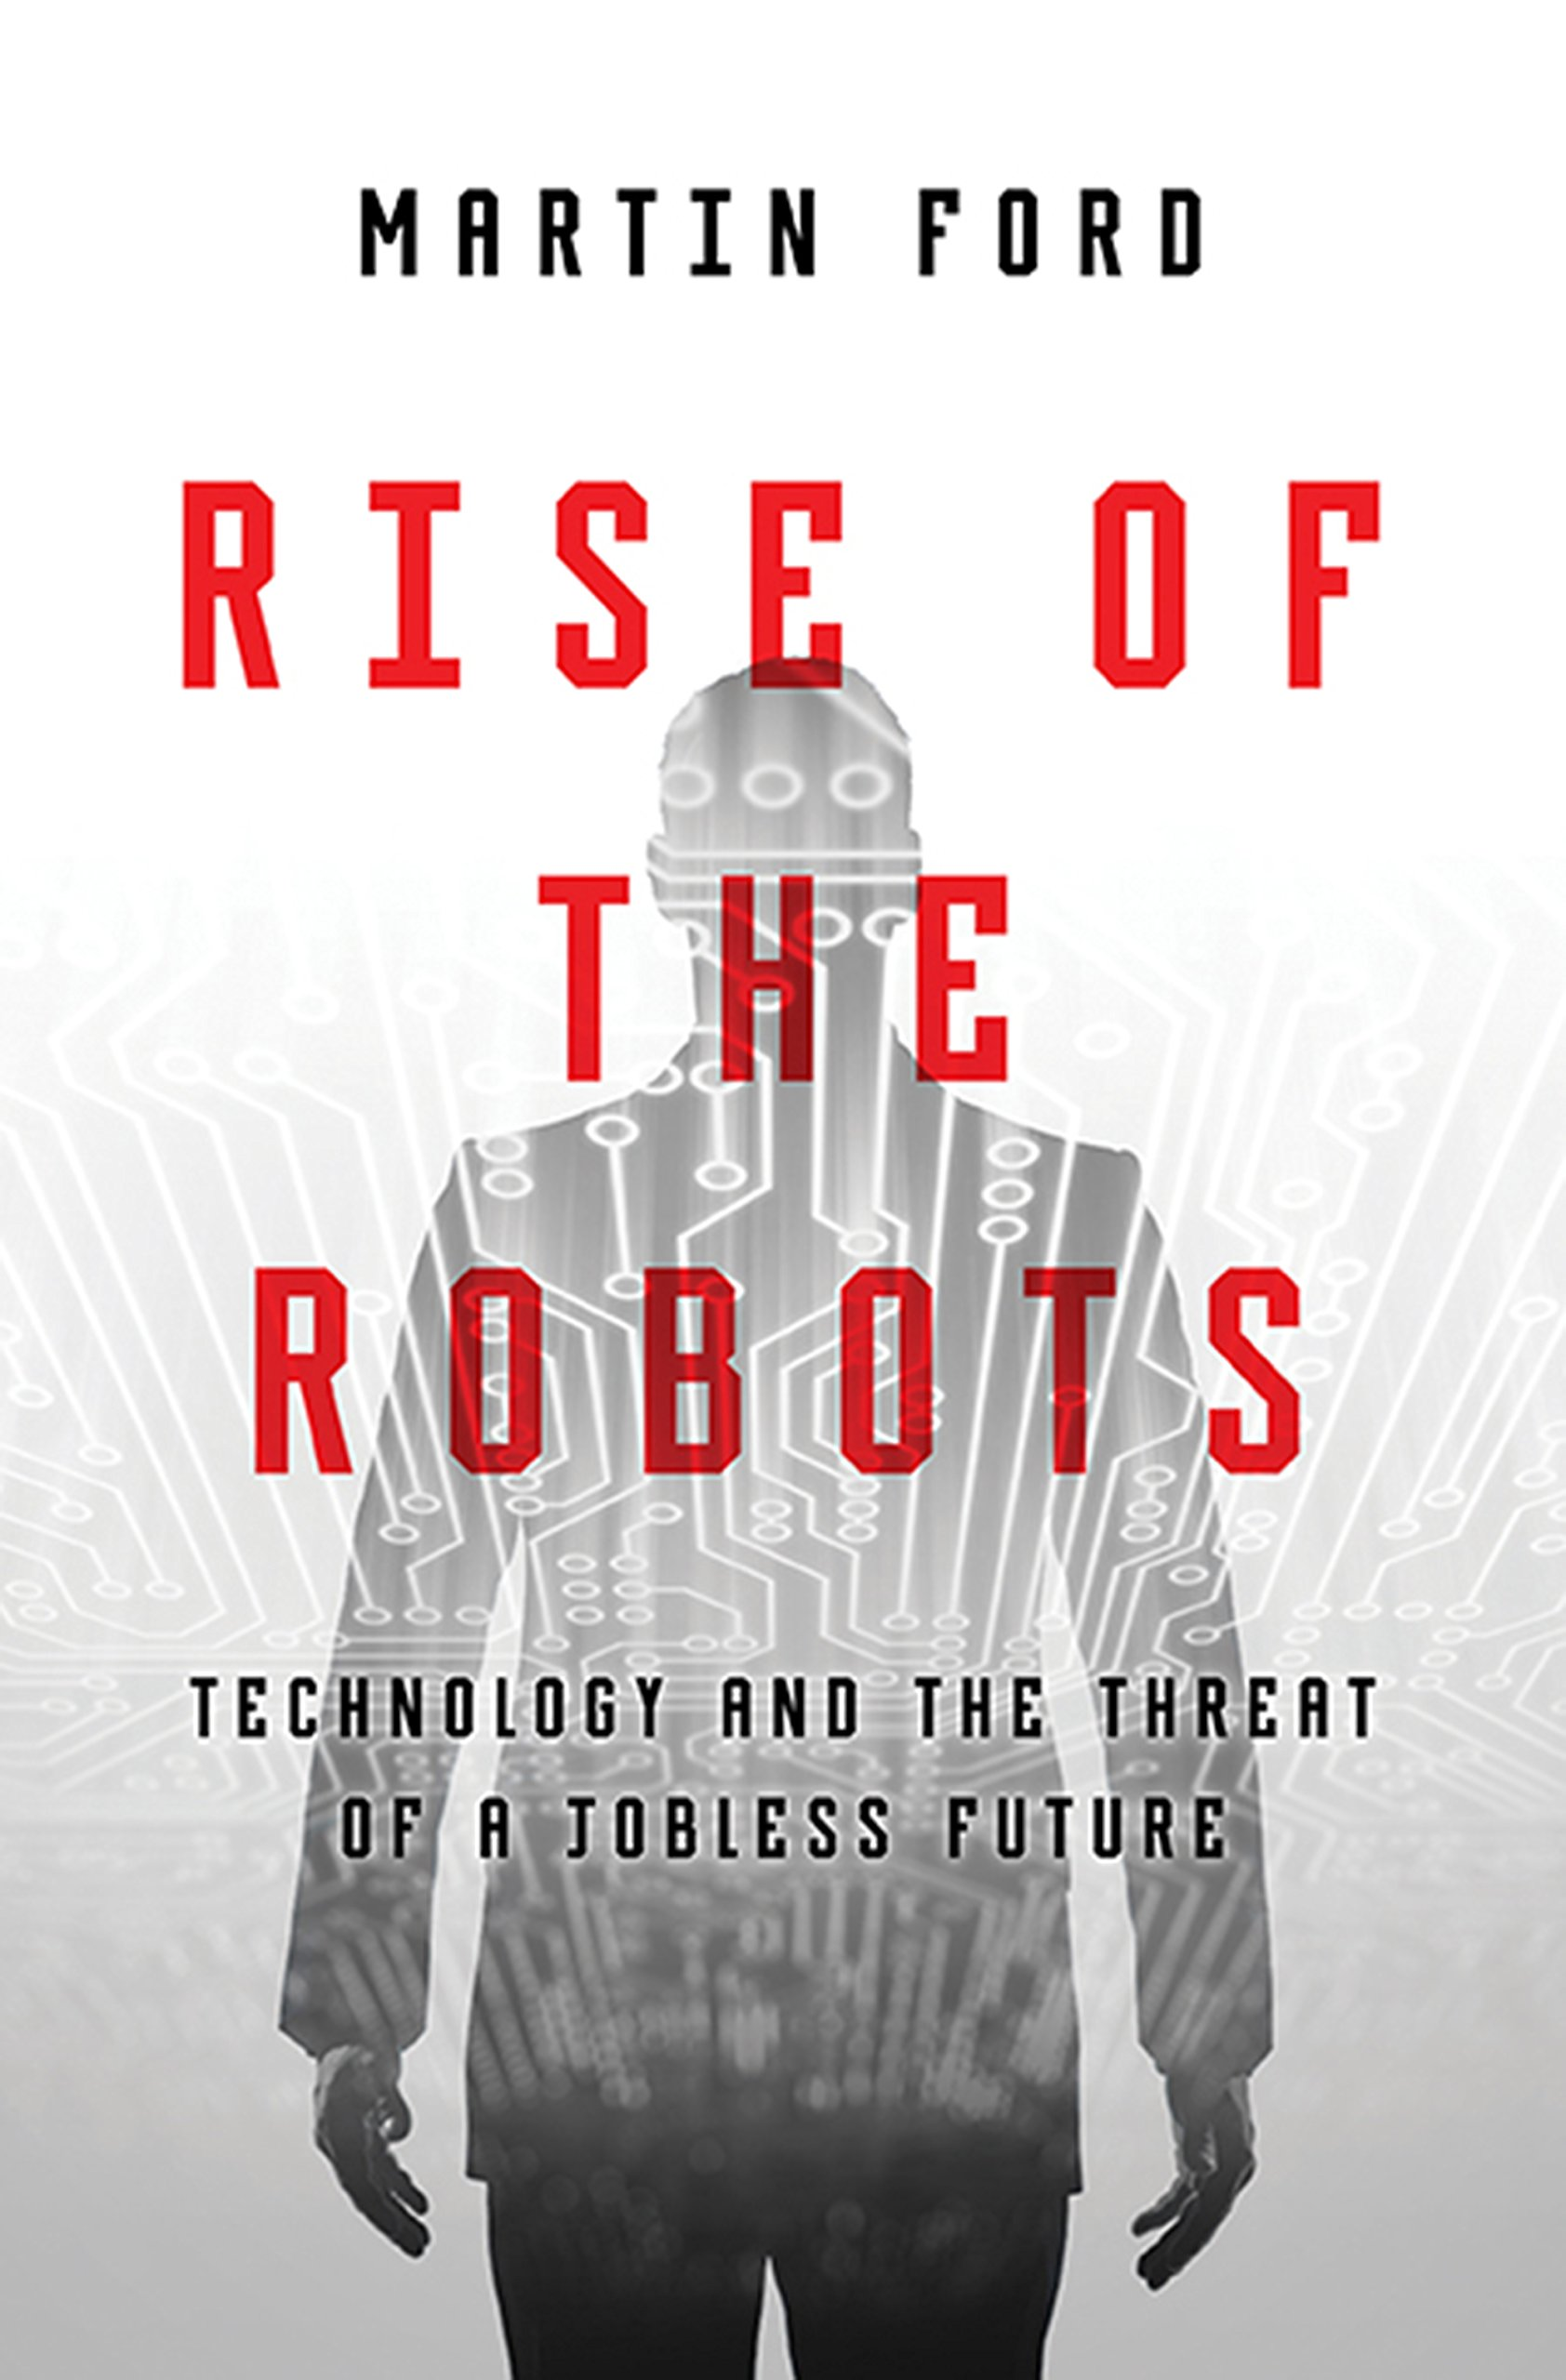 Martin Ford's Rise of the Robots